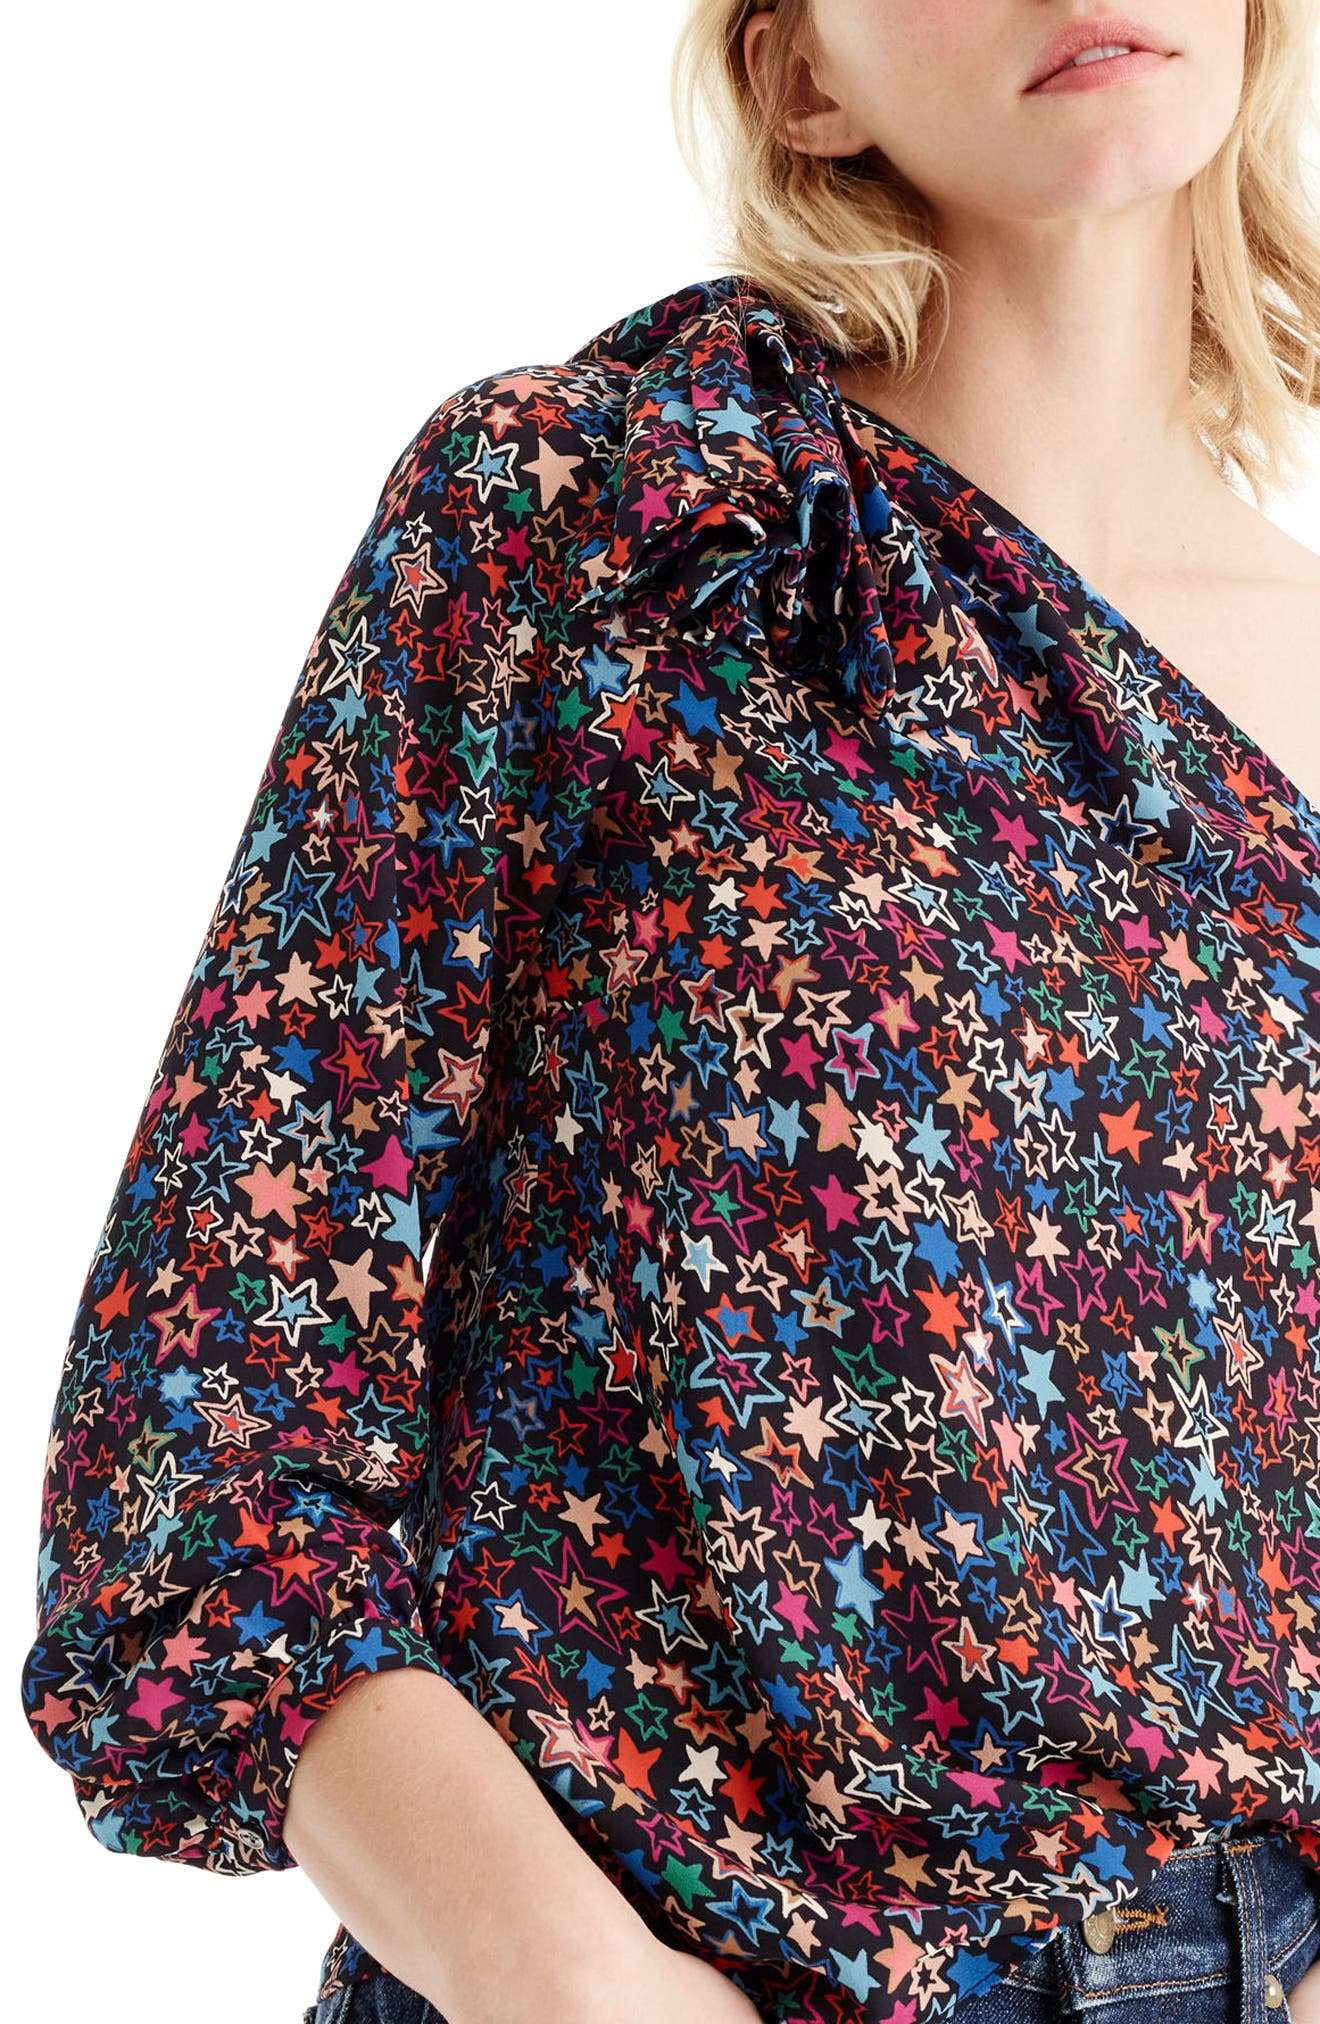 J.Crew Jacuzzi One-Shoulder Star Print Top